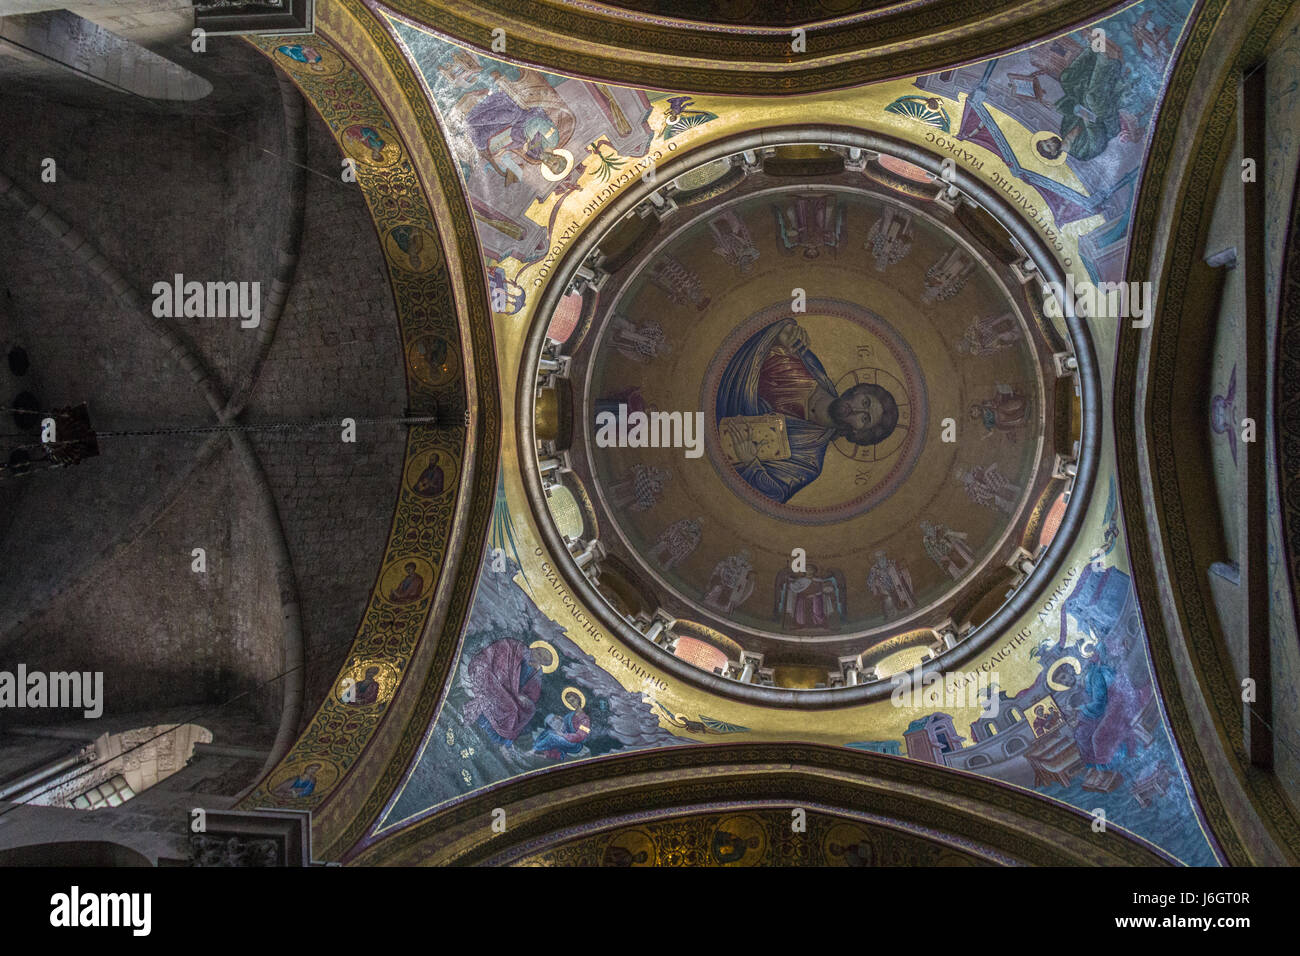 Dome Inside Church of Holy Sepulchre in Jerusalem - Stock Image